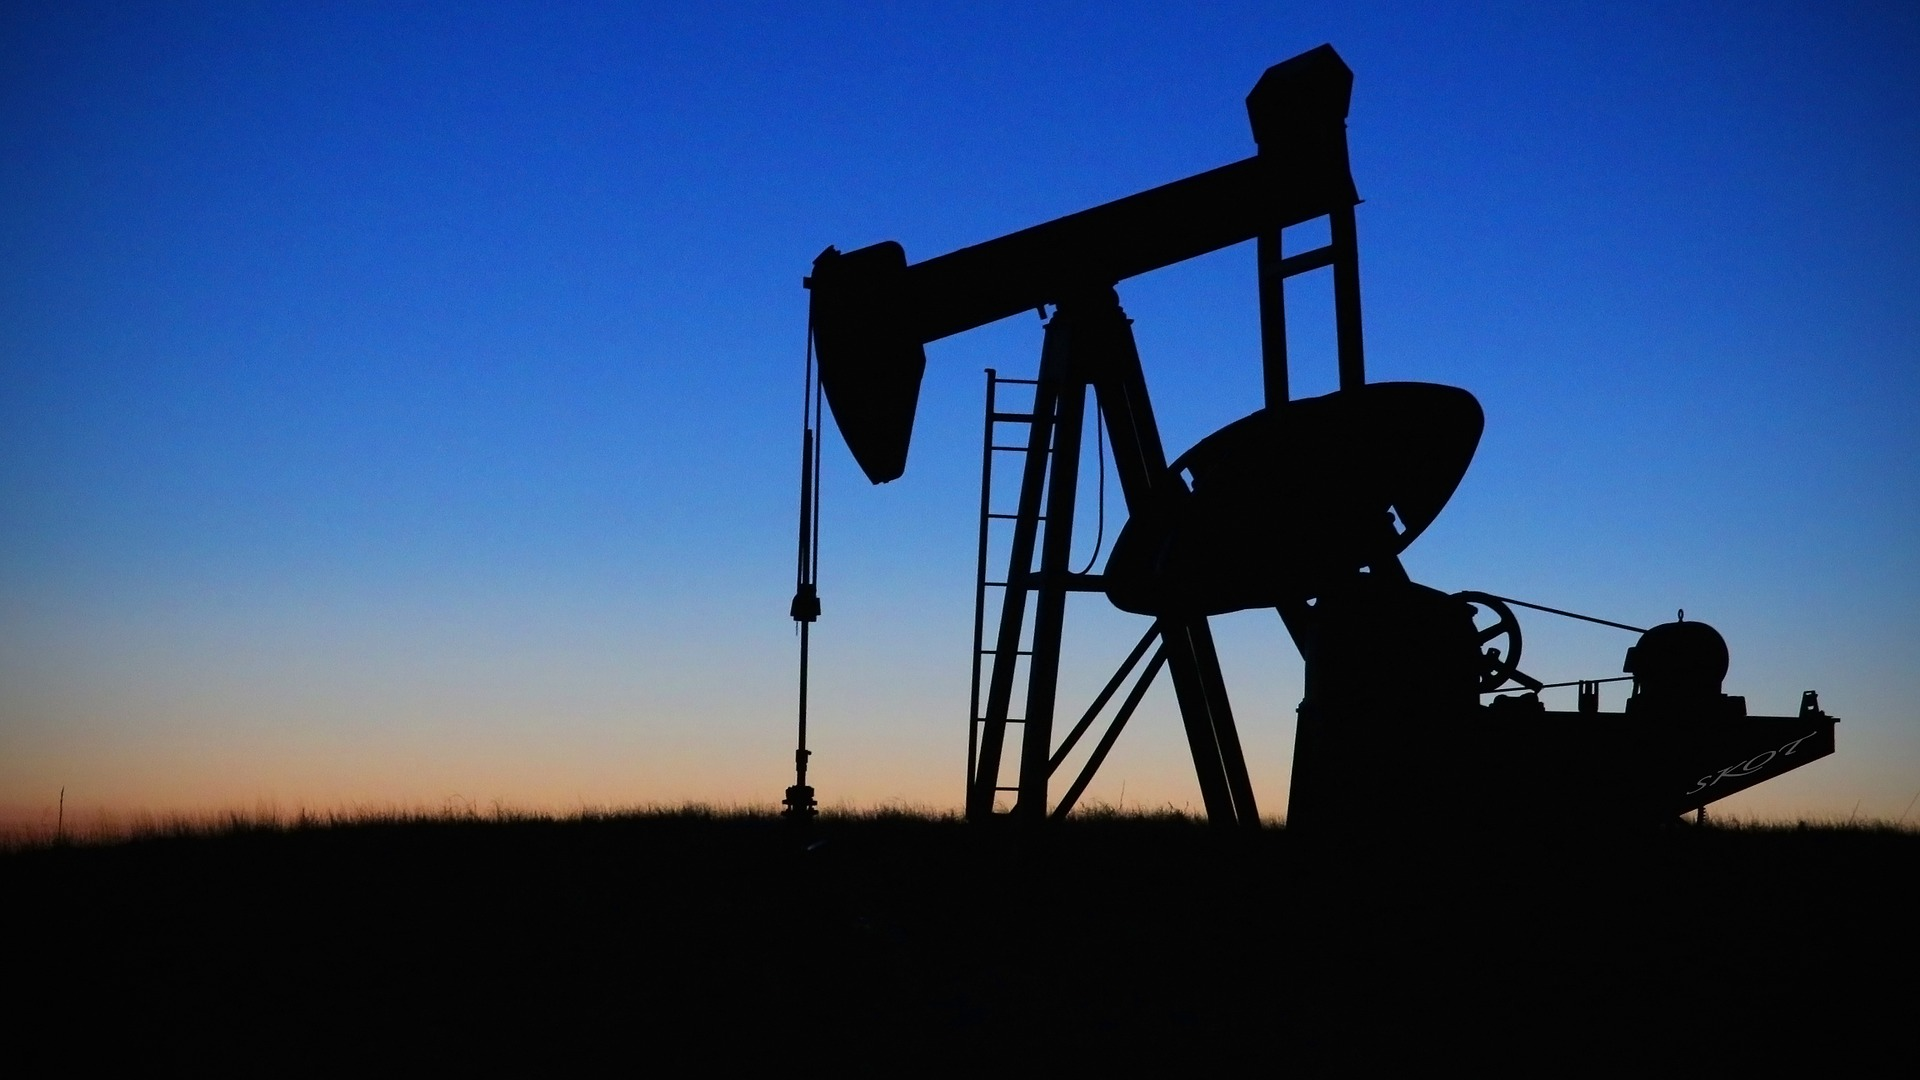 oil and gas the risks of investing. heavy lift. project logistics